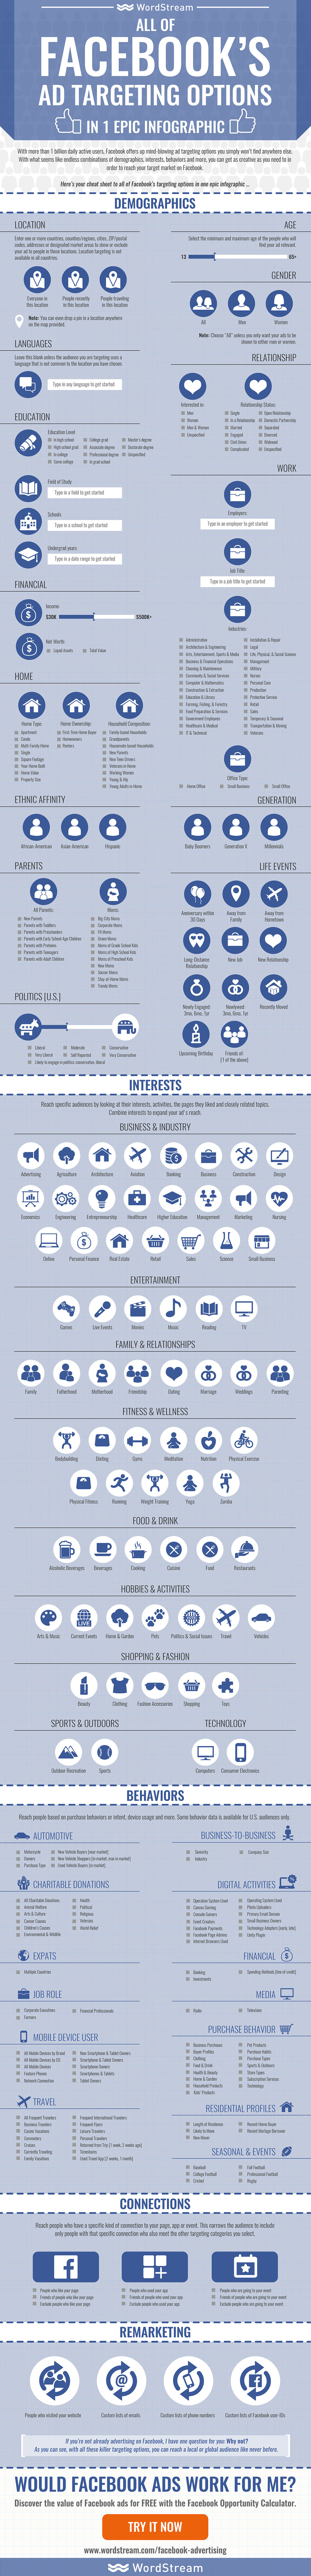 facebook-ad-targeting-options-infographic-wordstream-large.jpg